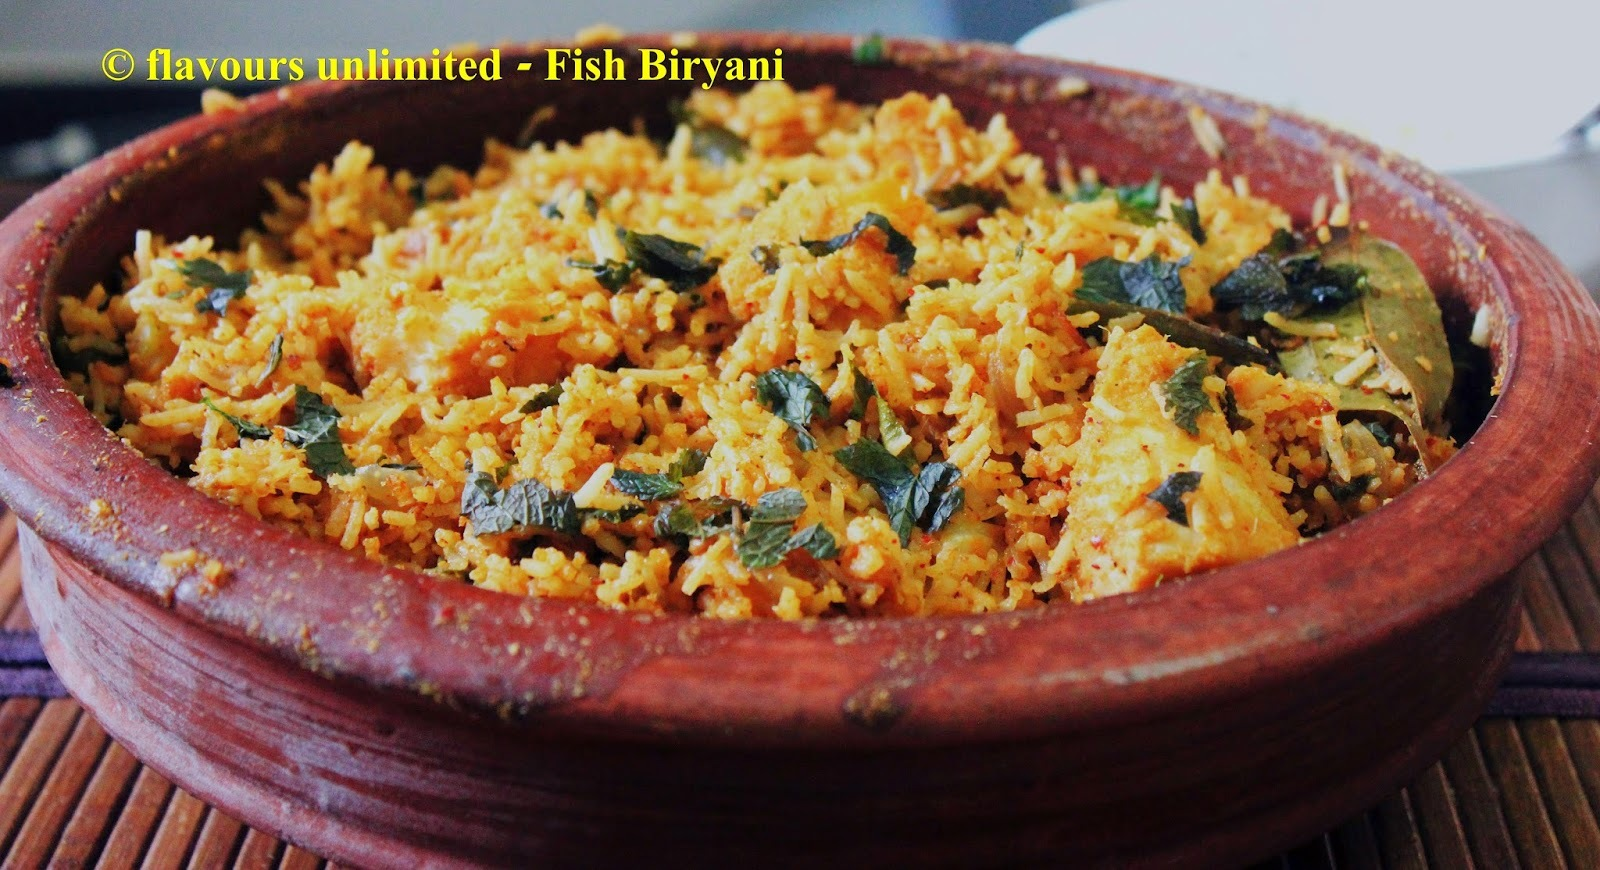 Fish Biryani or Fish Pulao in Clay Pot - South Indian Style with Coconut Milk